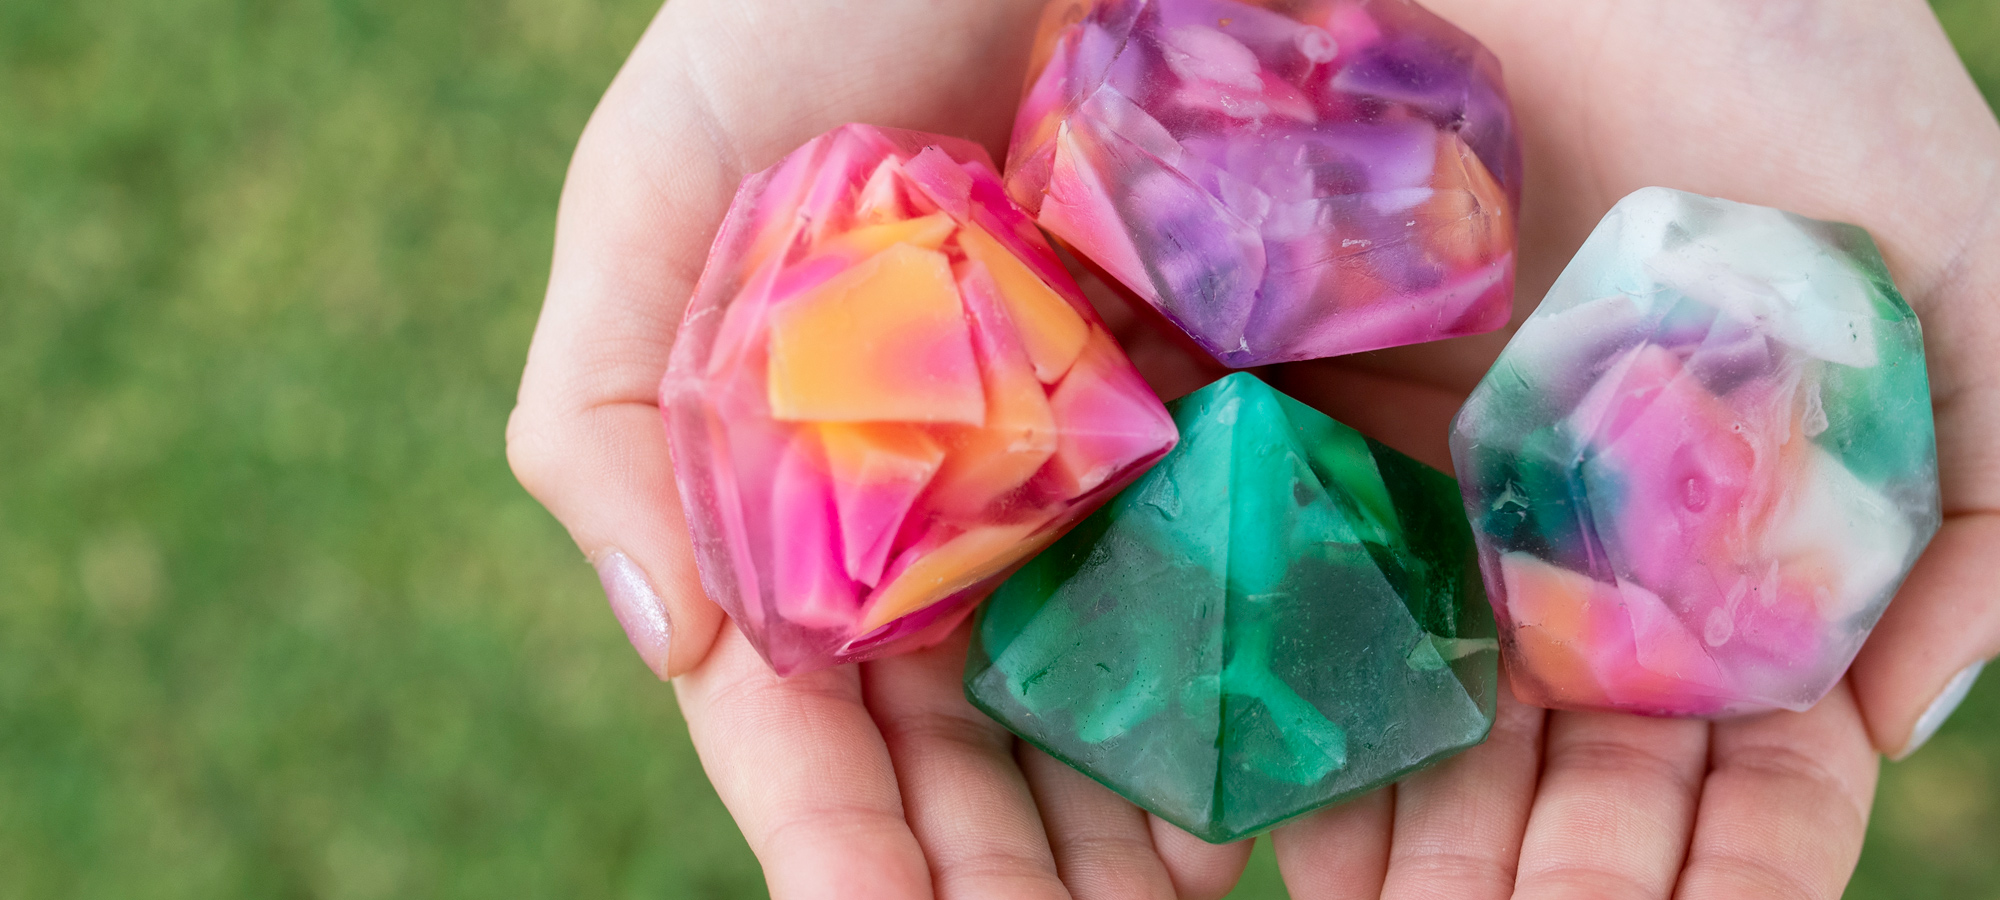 Hands holding colorful diamond shaped hand soaps